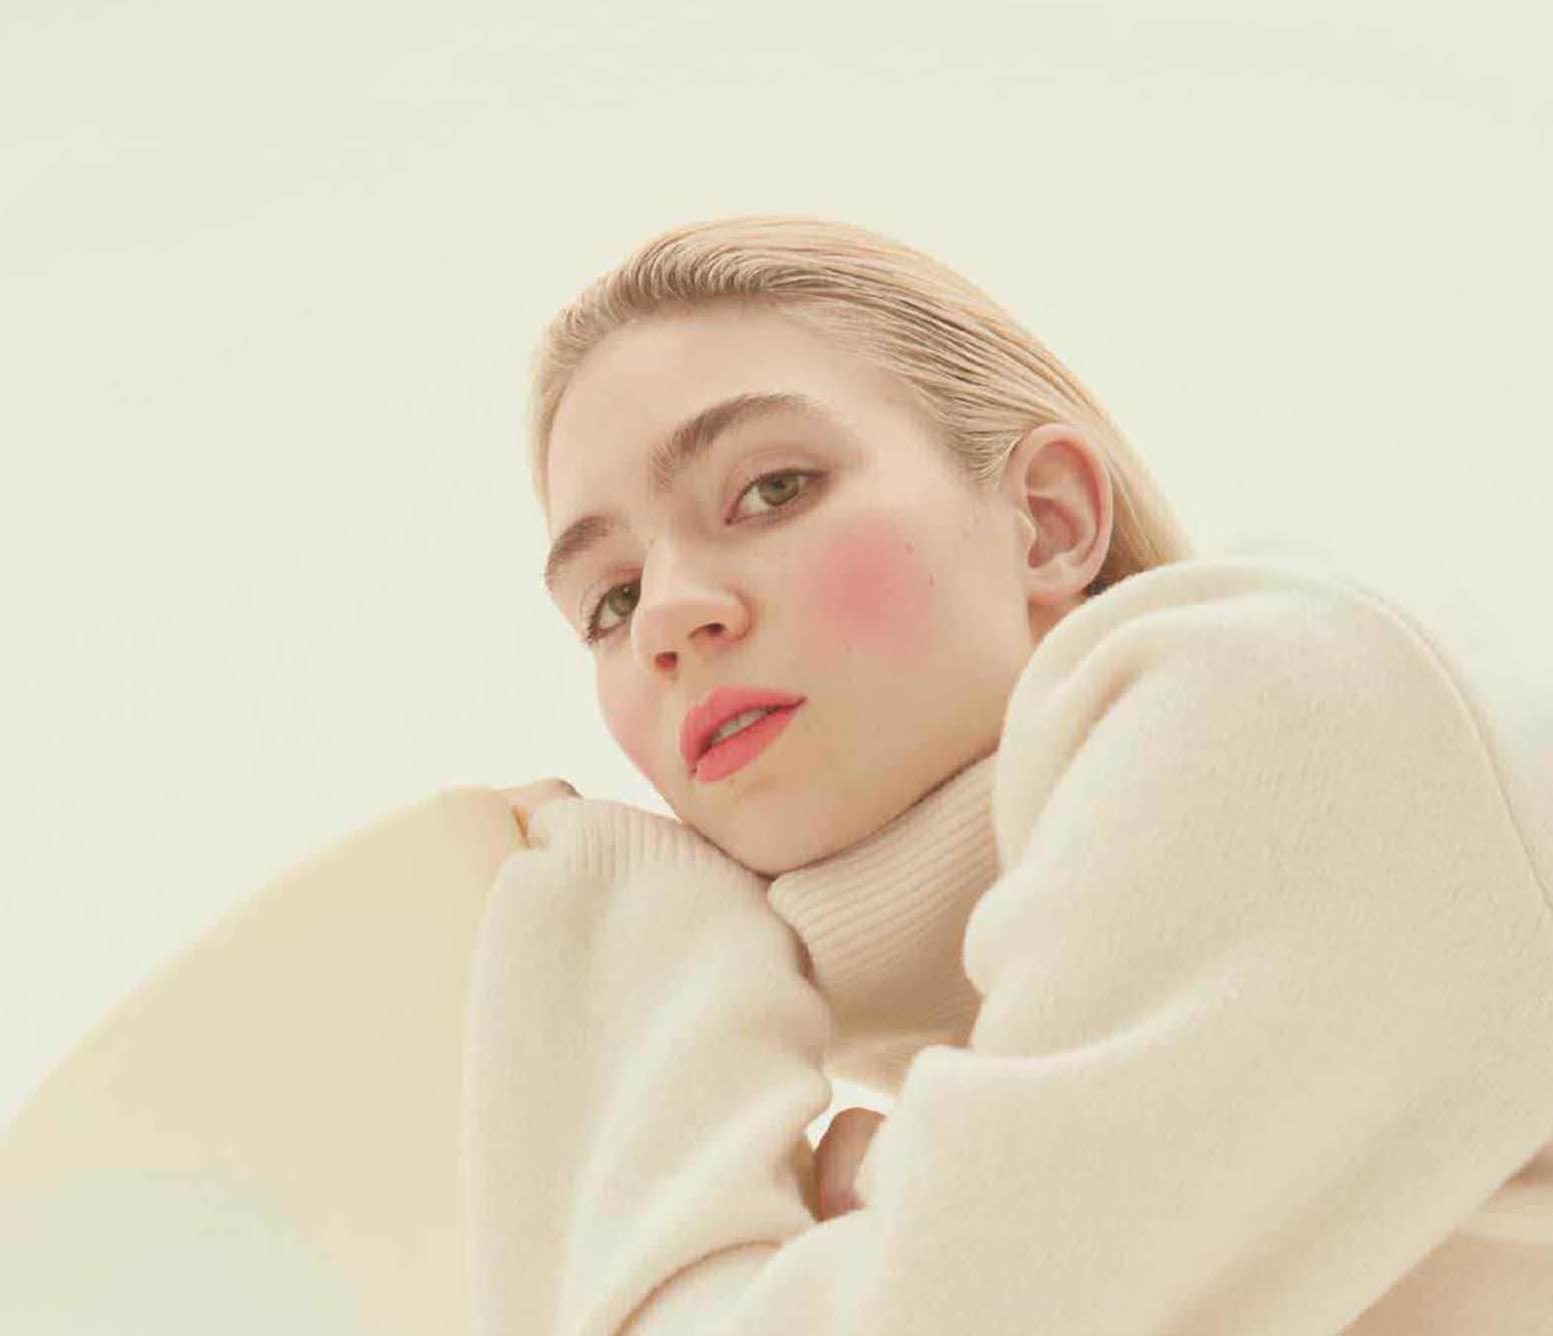 grimes chatrooms Chatrooms search beatstars v107  grimes the ogb  music producer feed  feed  buy $1000+ city sleeps grimes the ogb beat .